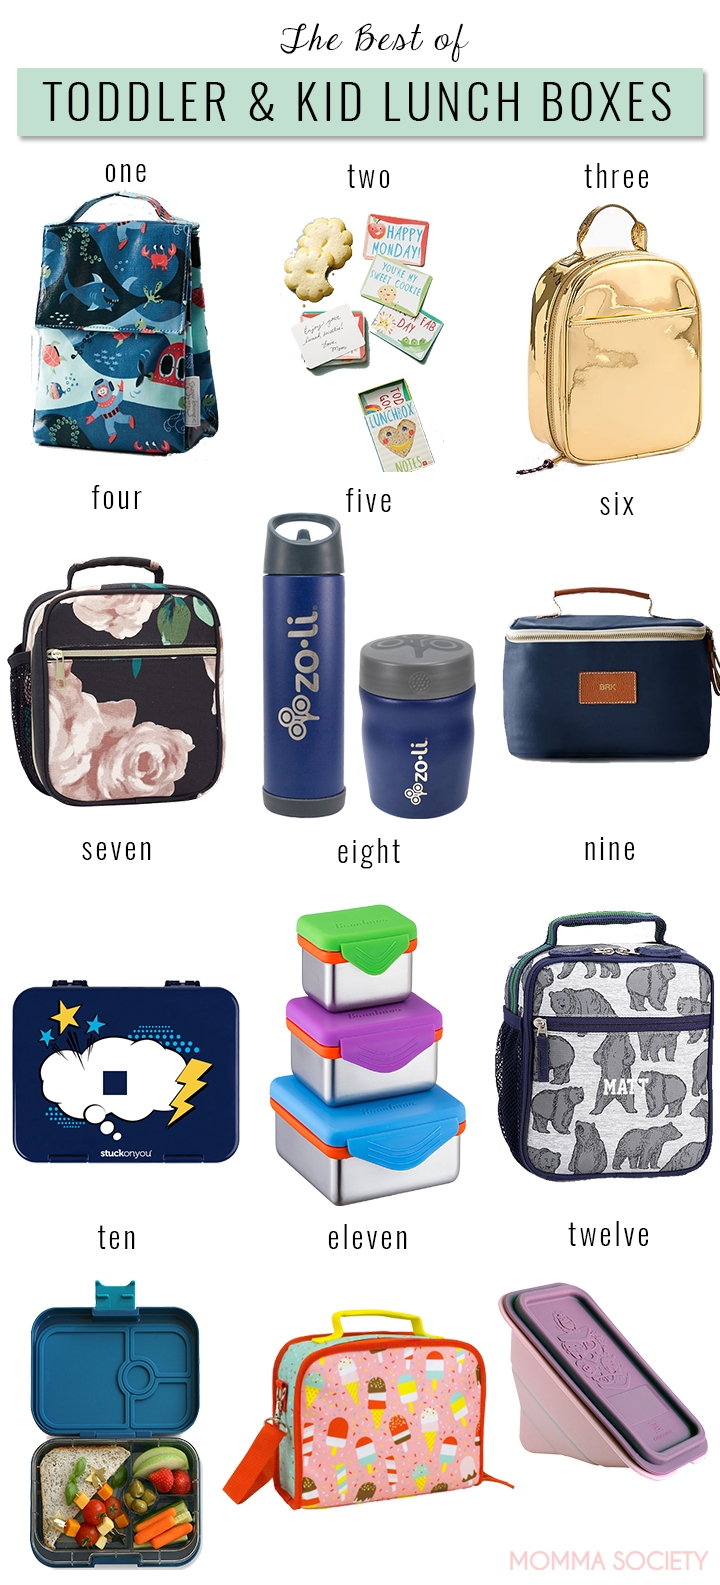 Toddler and Kid Lunch Box Roundup.jpg